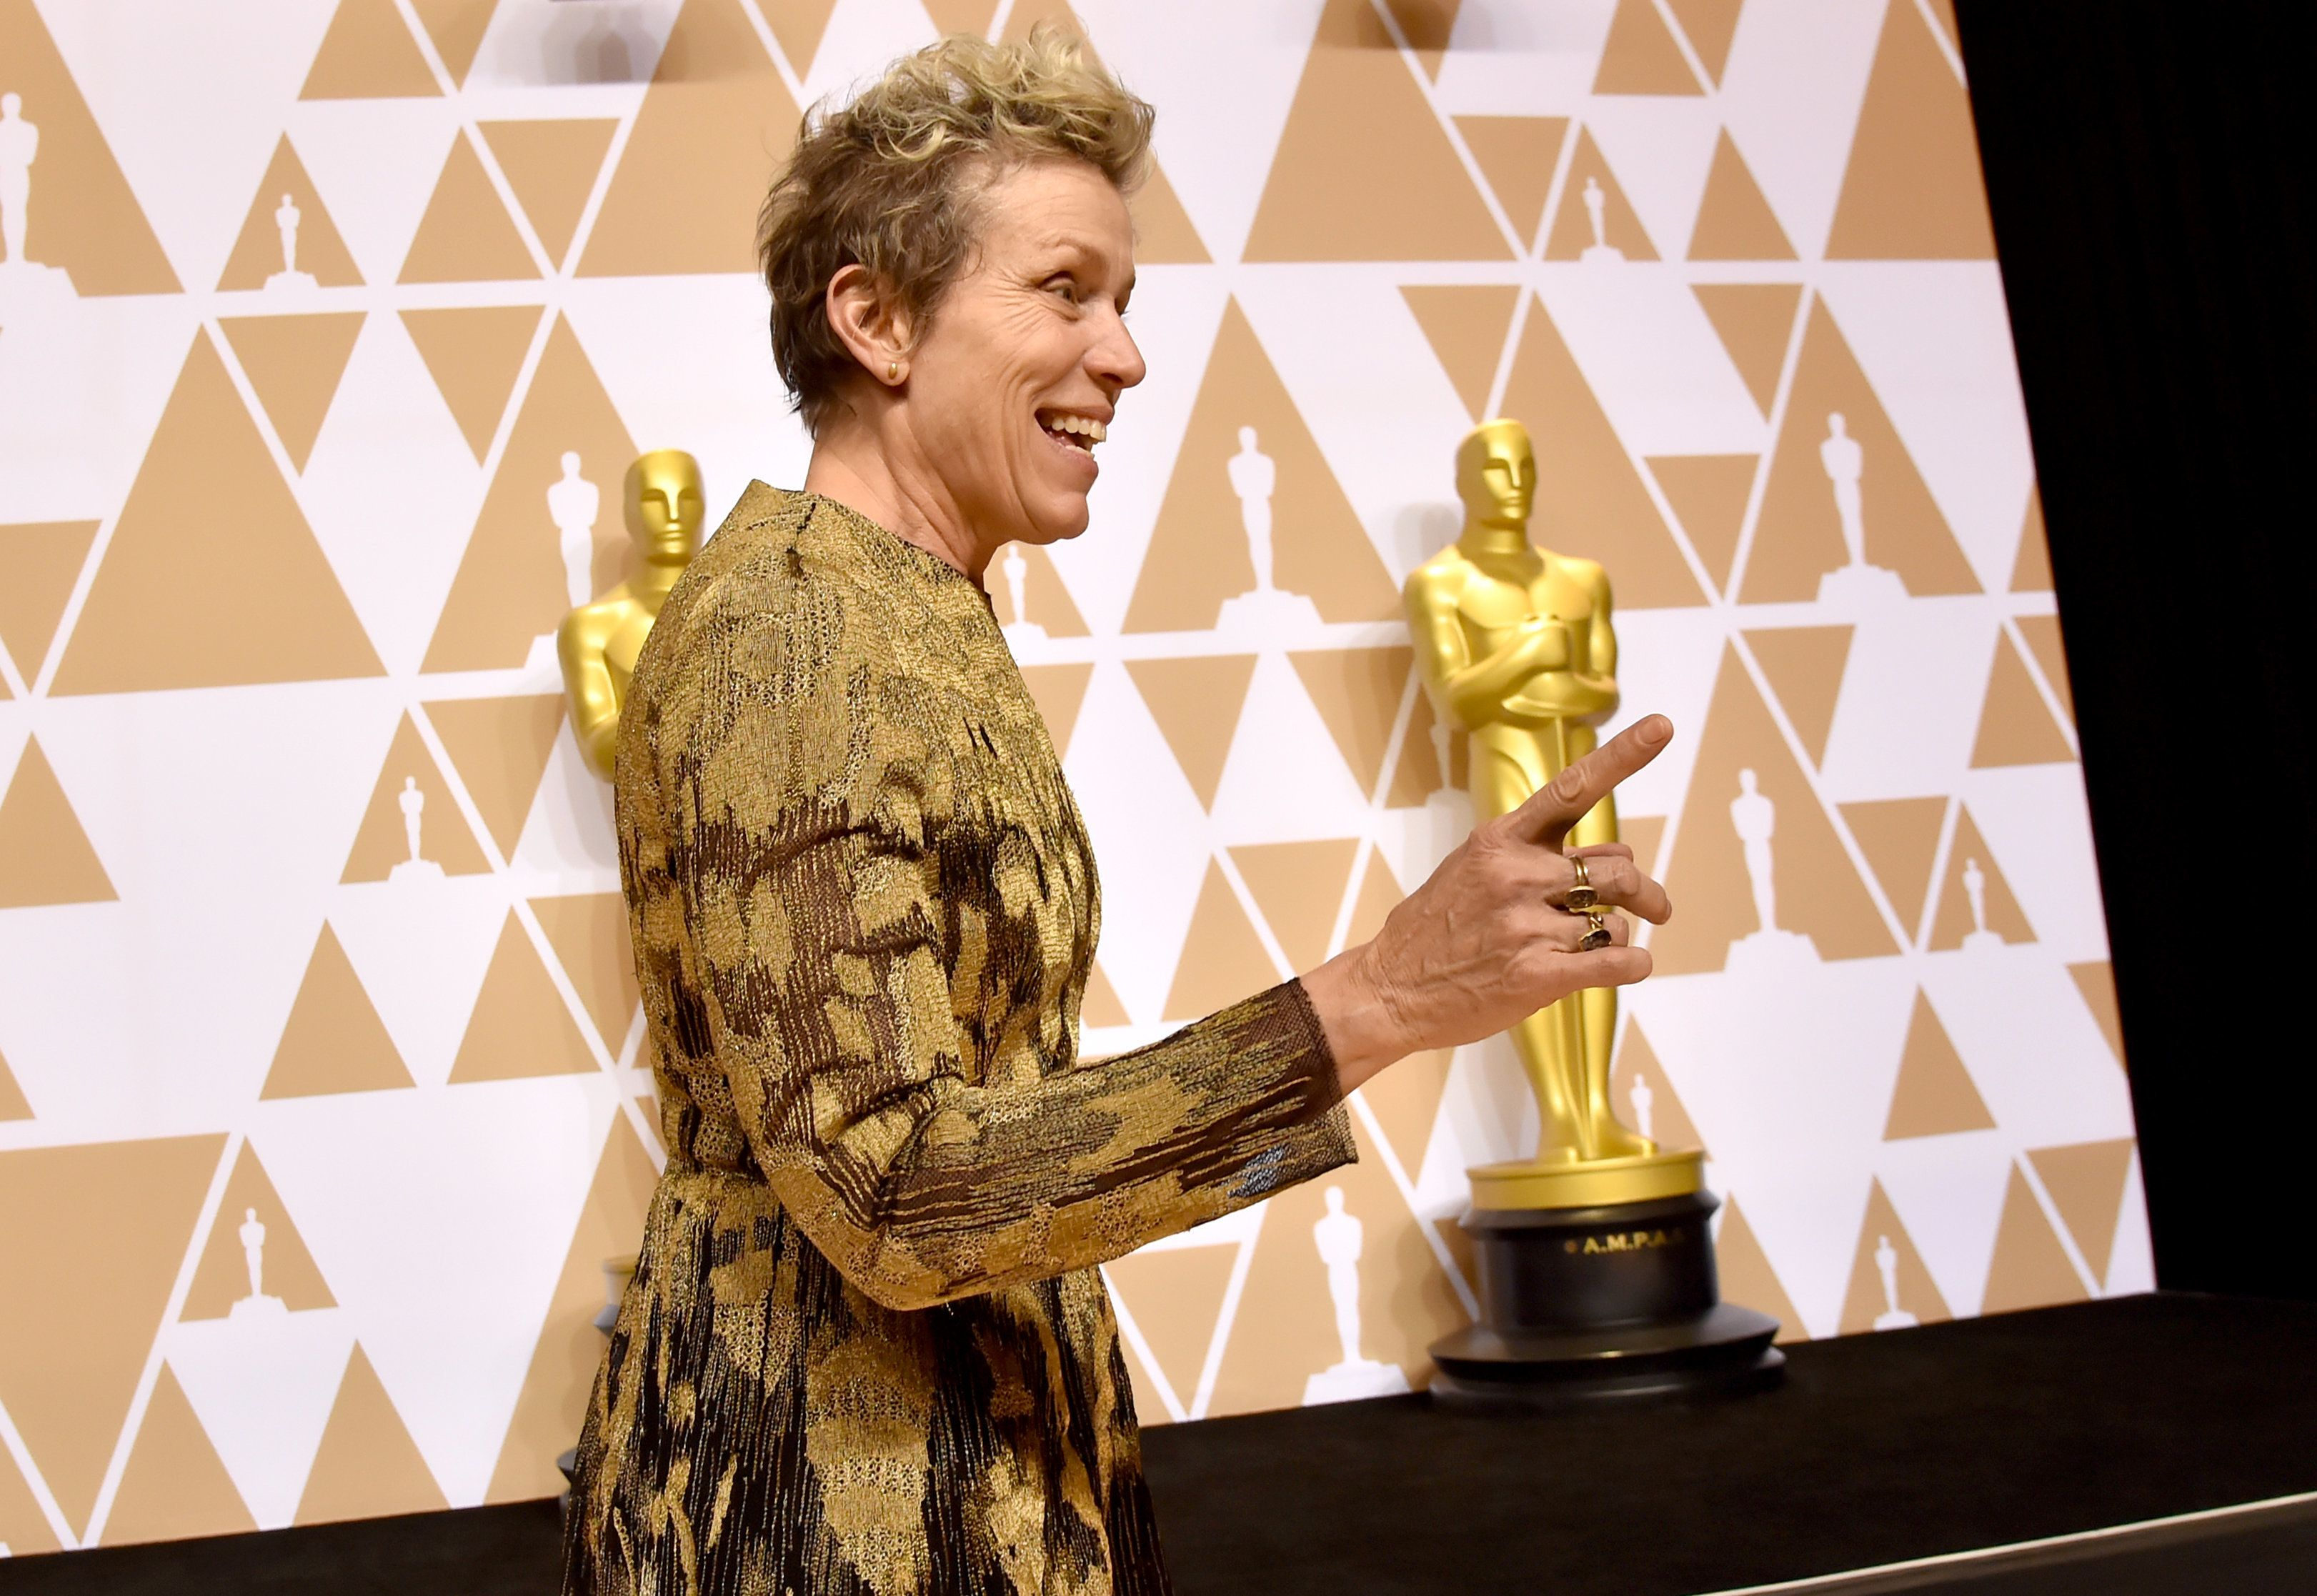 HOLLYWOOD, CA - MARCH 04:  Actor Frances McDormand, winner of the Best Actress award for 'Three Billboards Outside Ebbing, Missouri' poses in the press room during the 90th Annual Academy Awards at Hollywood & Highland Center on March 4, 2018 in Hollywood, California.  (Photo by Jeff Kravitz/FilmMagic)